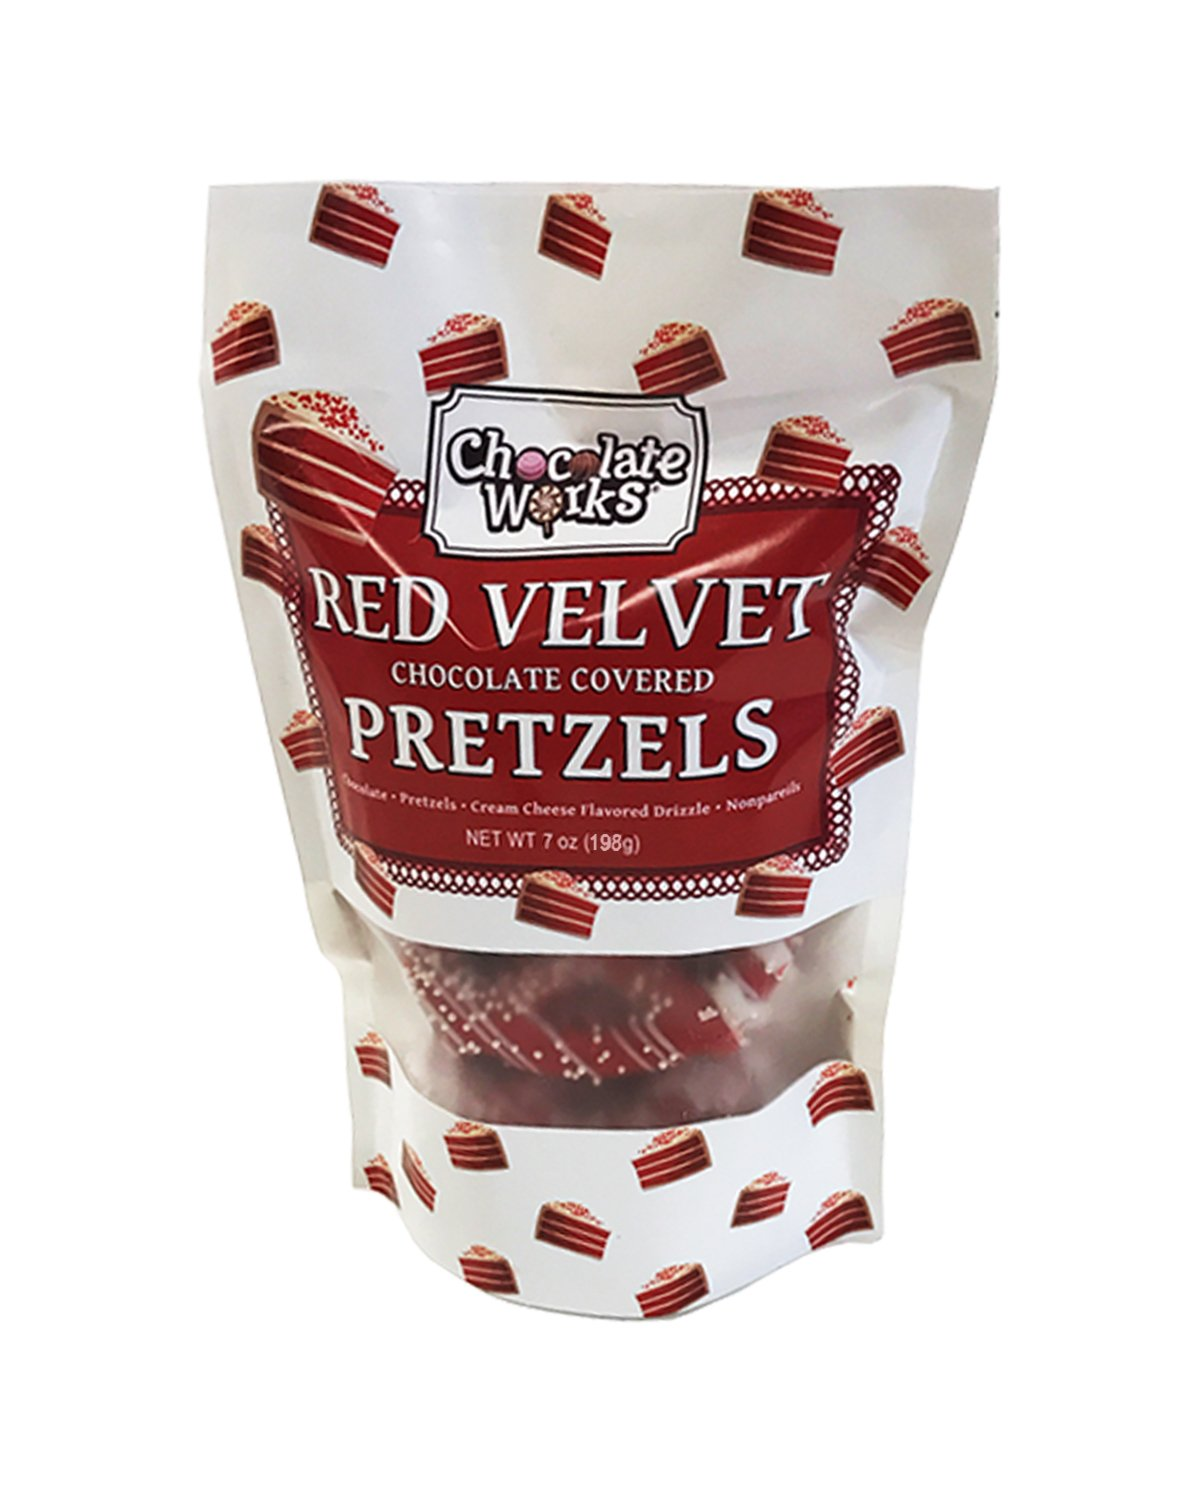 Red Velvet Chocolate Covered Pretzels Pouches, 12 Pack by Chocolate Works